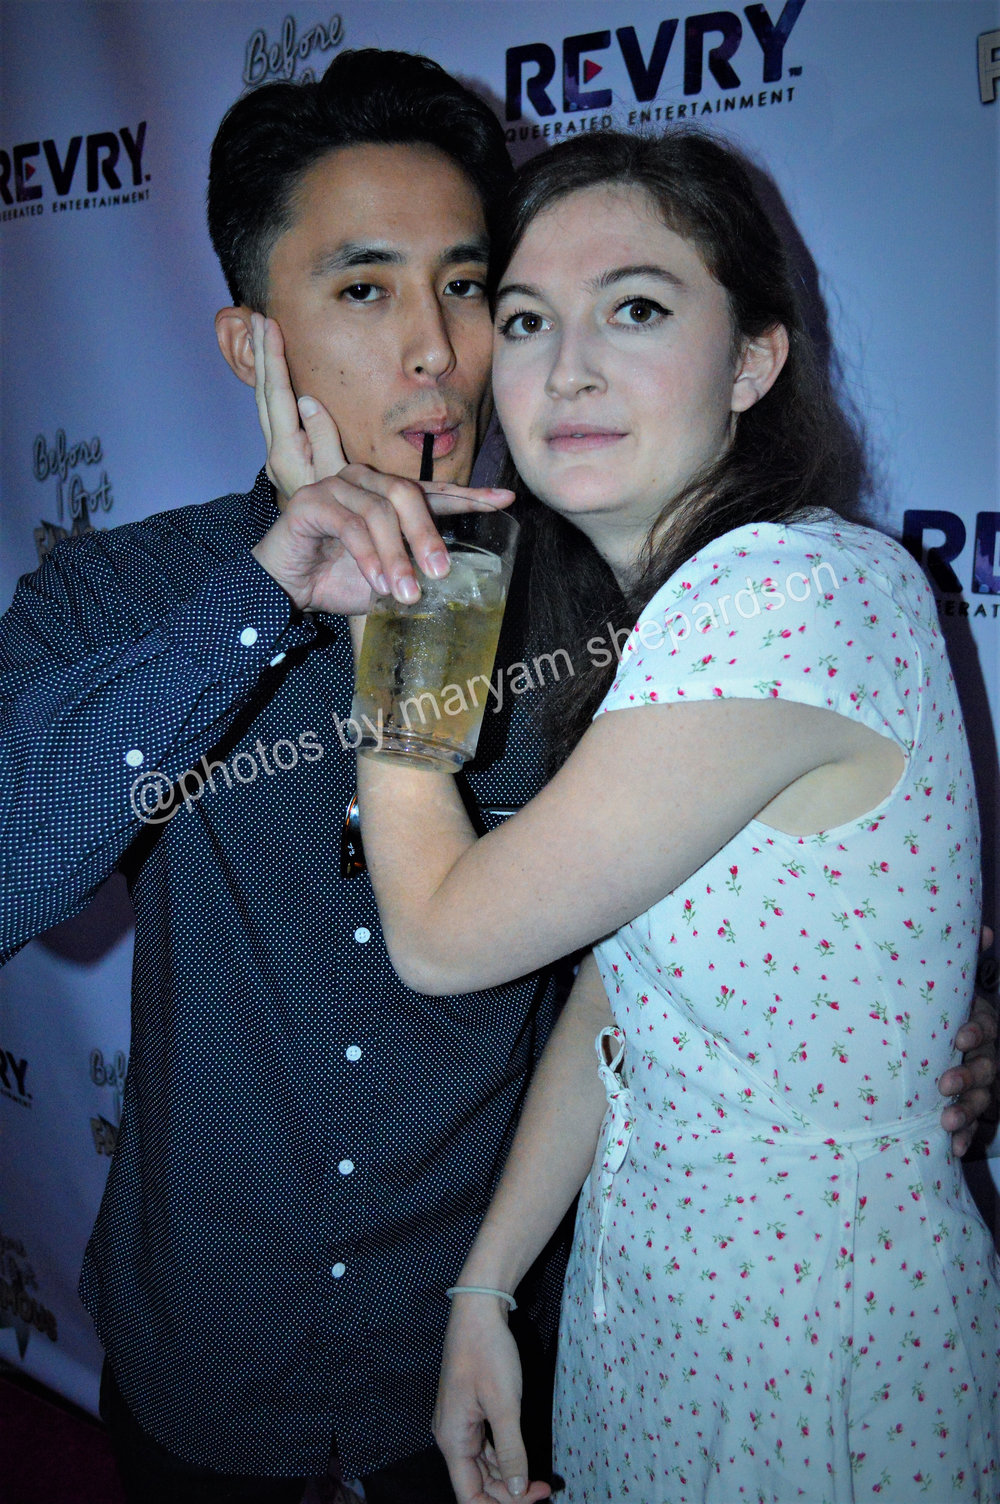 Actors Camille Wormser and Anthony Ma